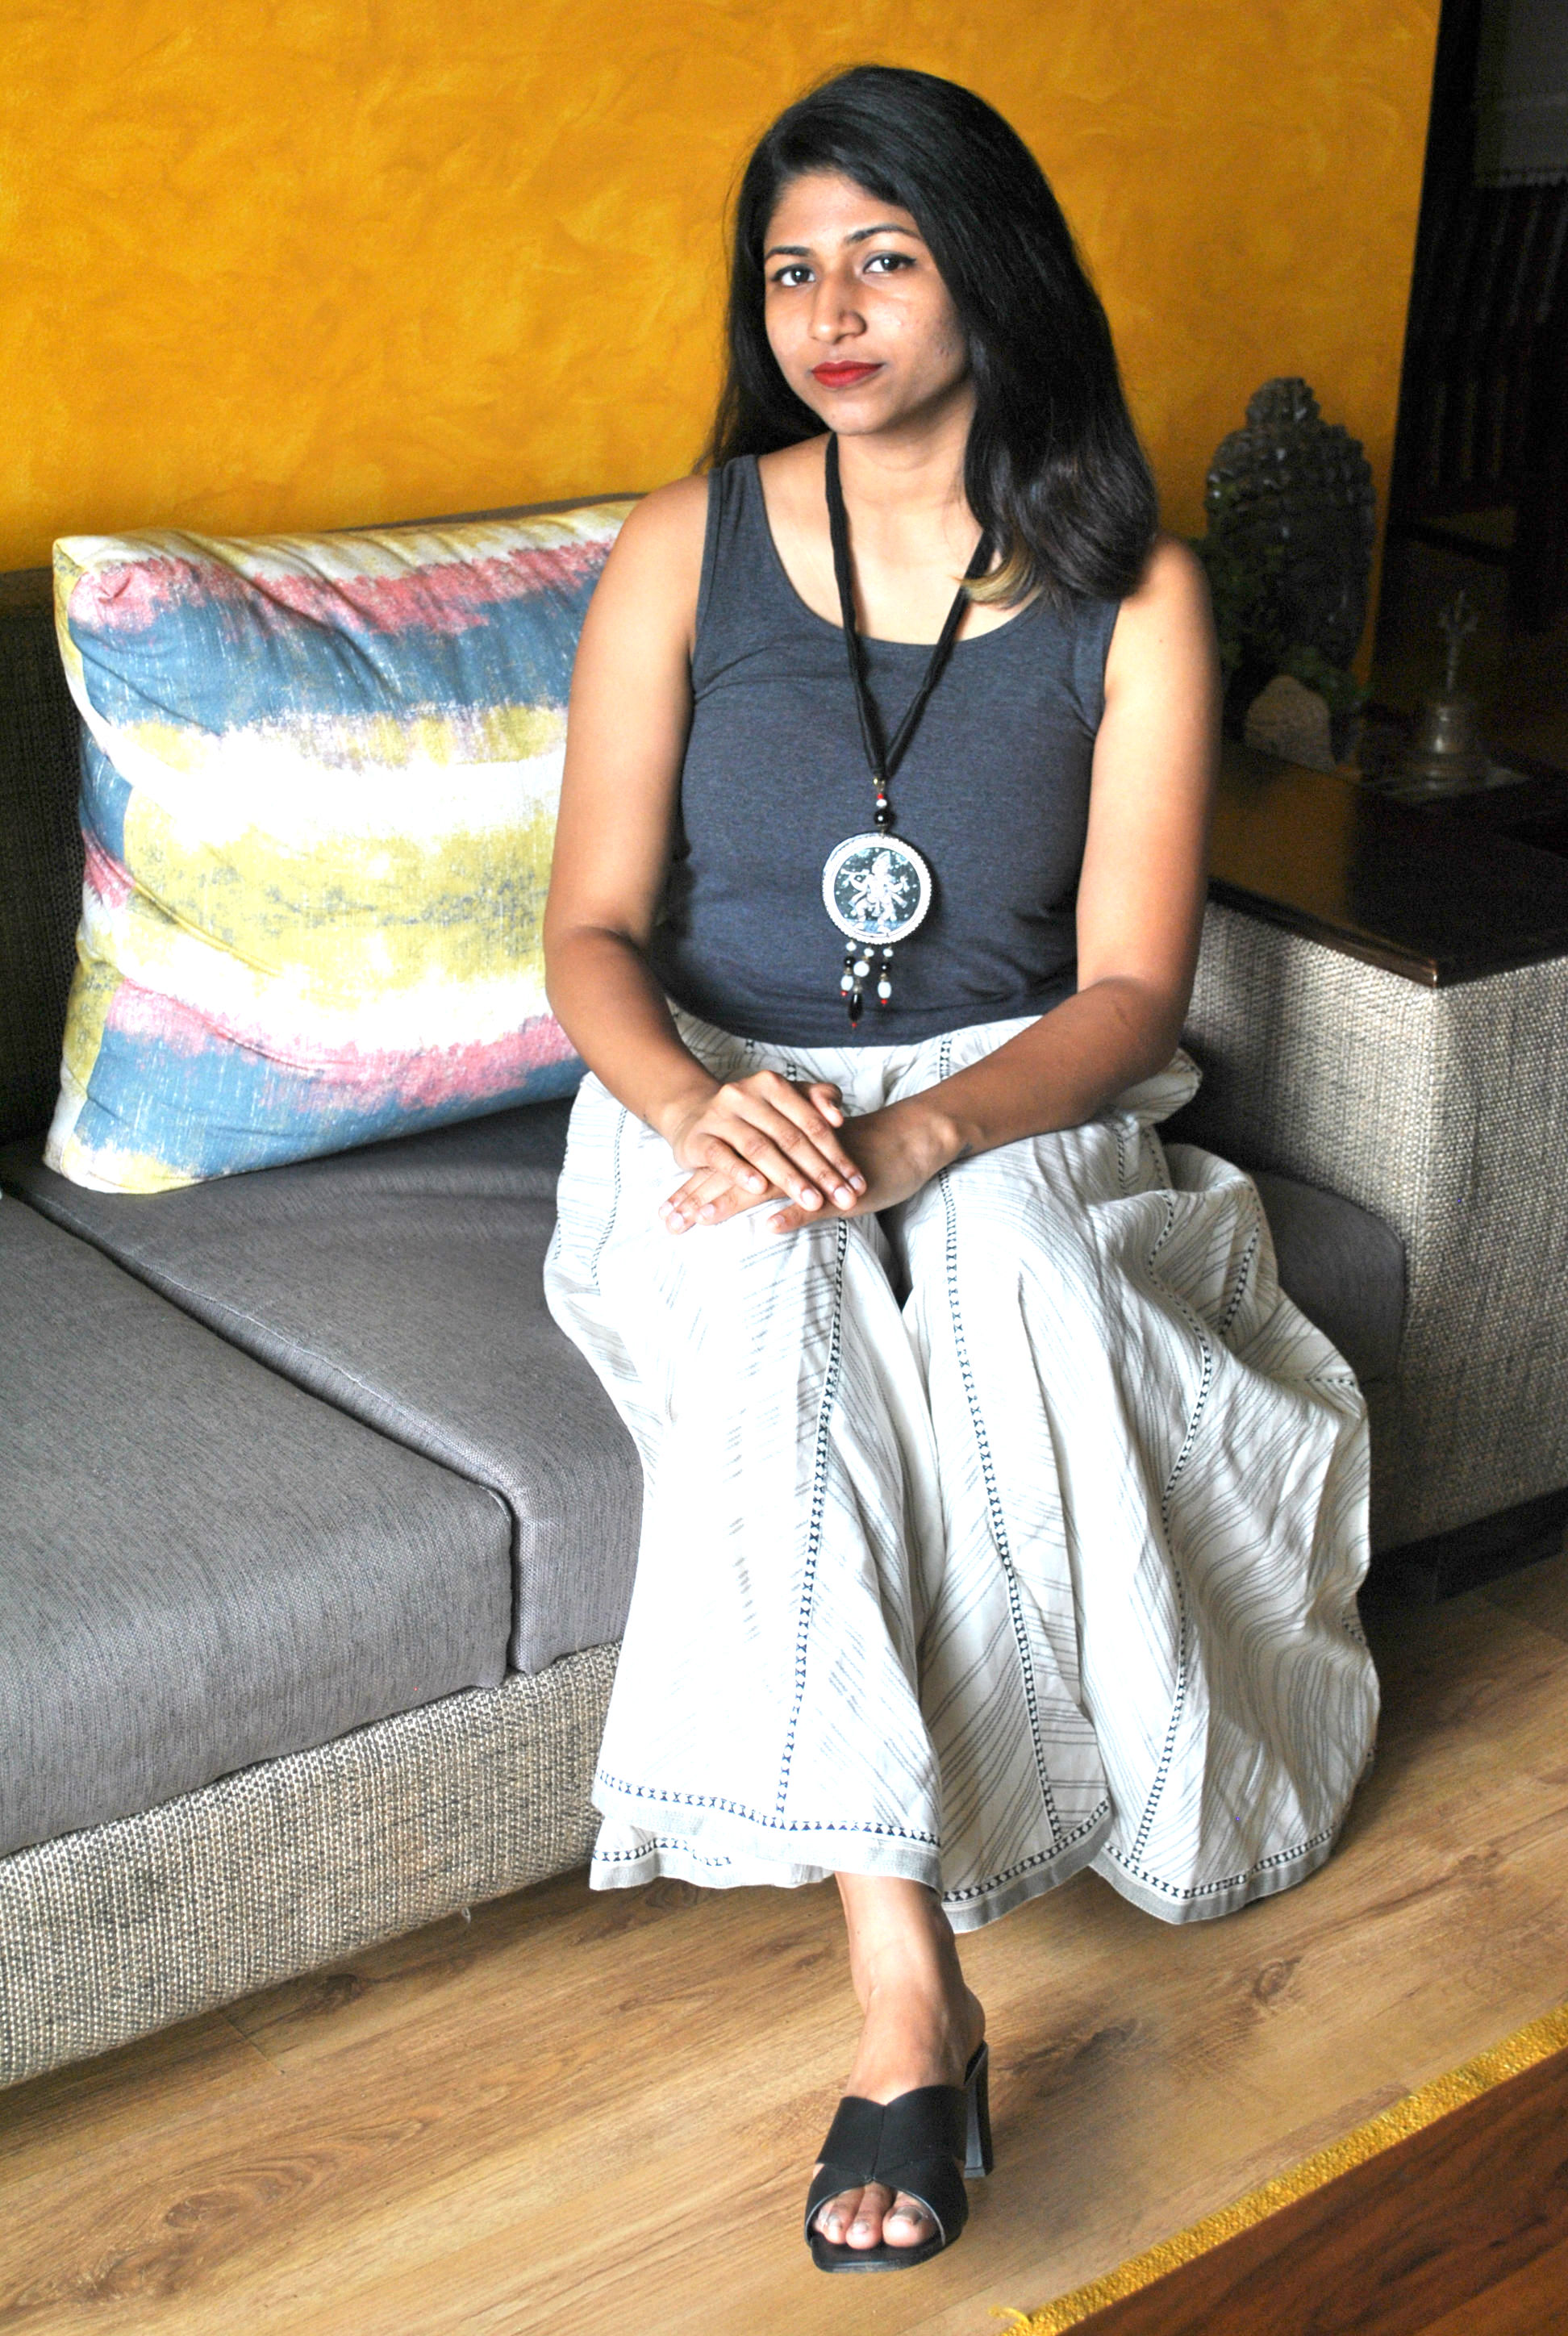 5-Amazing-ways-to-style-your-Pattachitra-Necklace2 5 Amazing ways to style your Pattachitra Necklace  - Tradition meets Trend